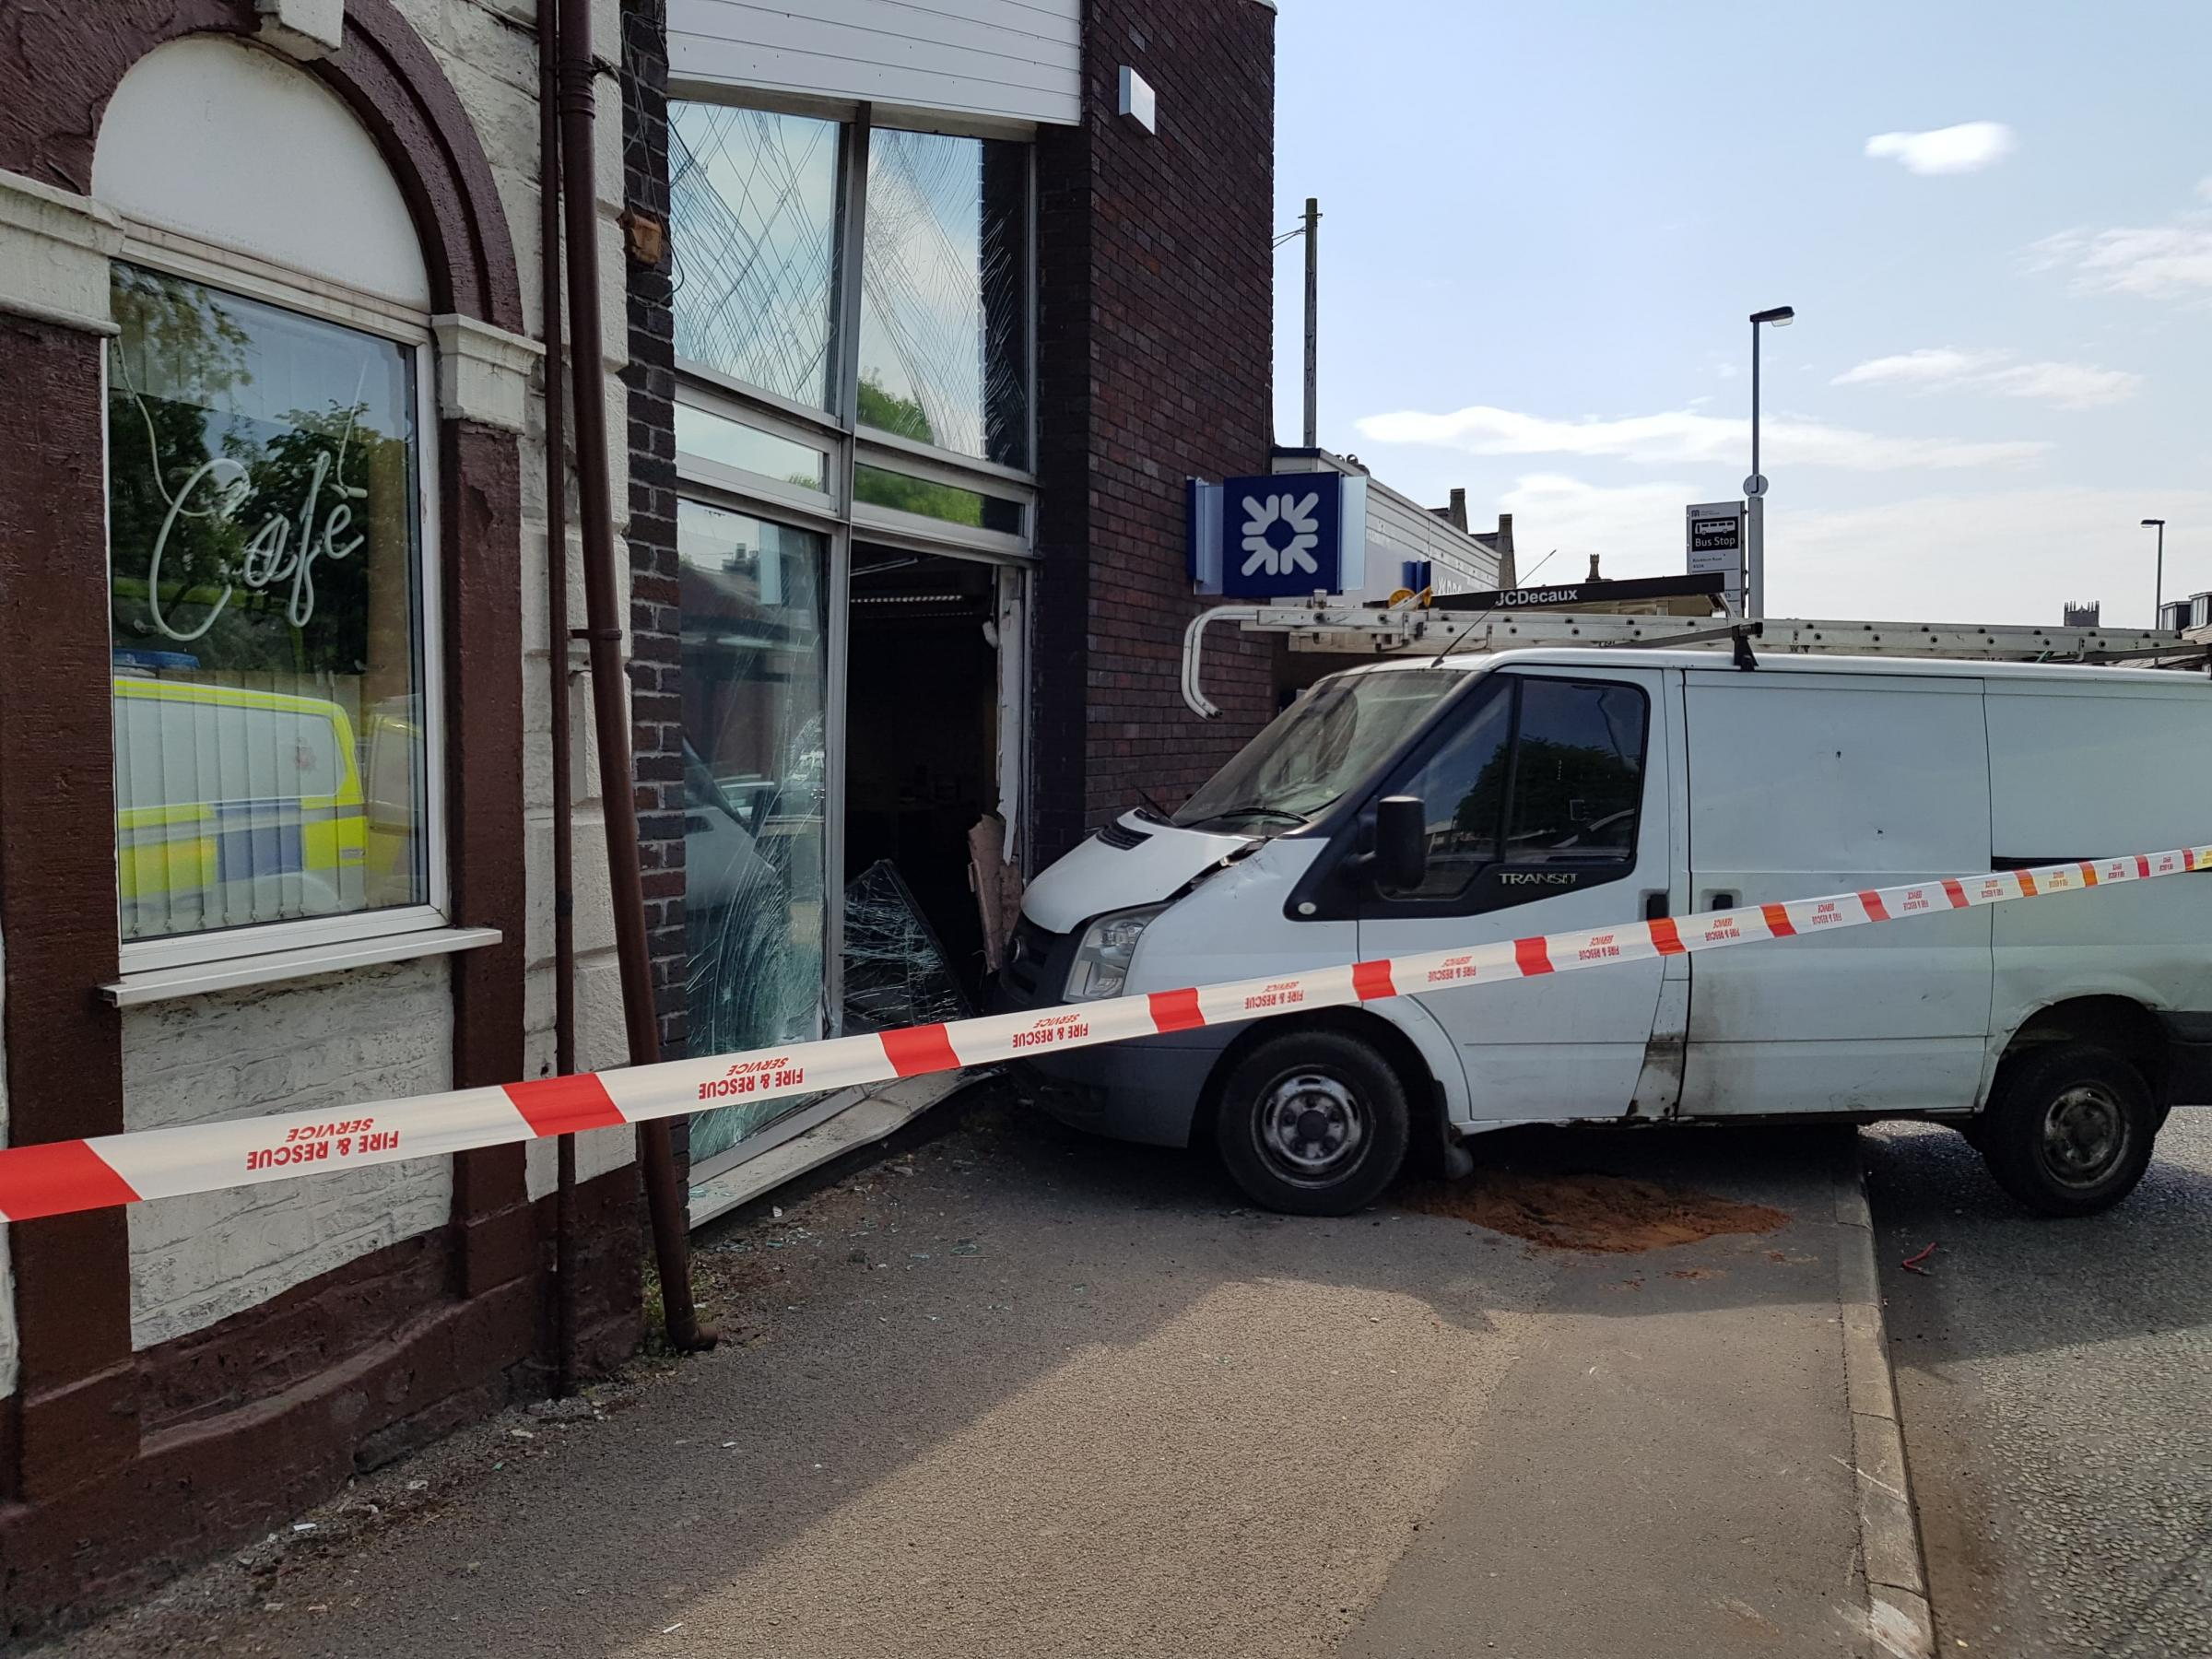 A white Ford Transit van crashed into the Royal Bank of Scotland branch in Blackburn Road, Astley Bridge